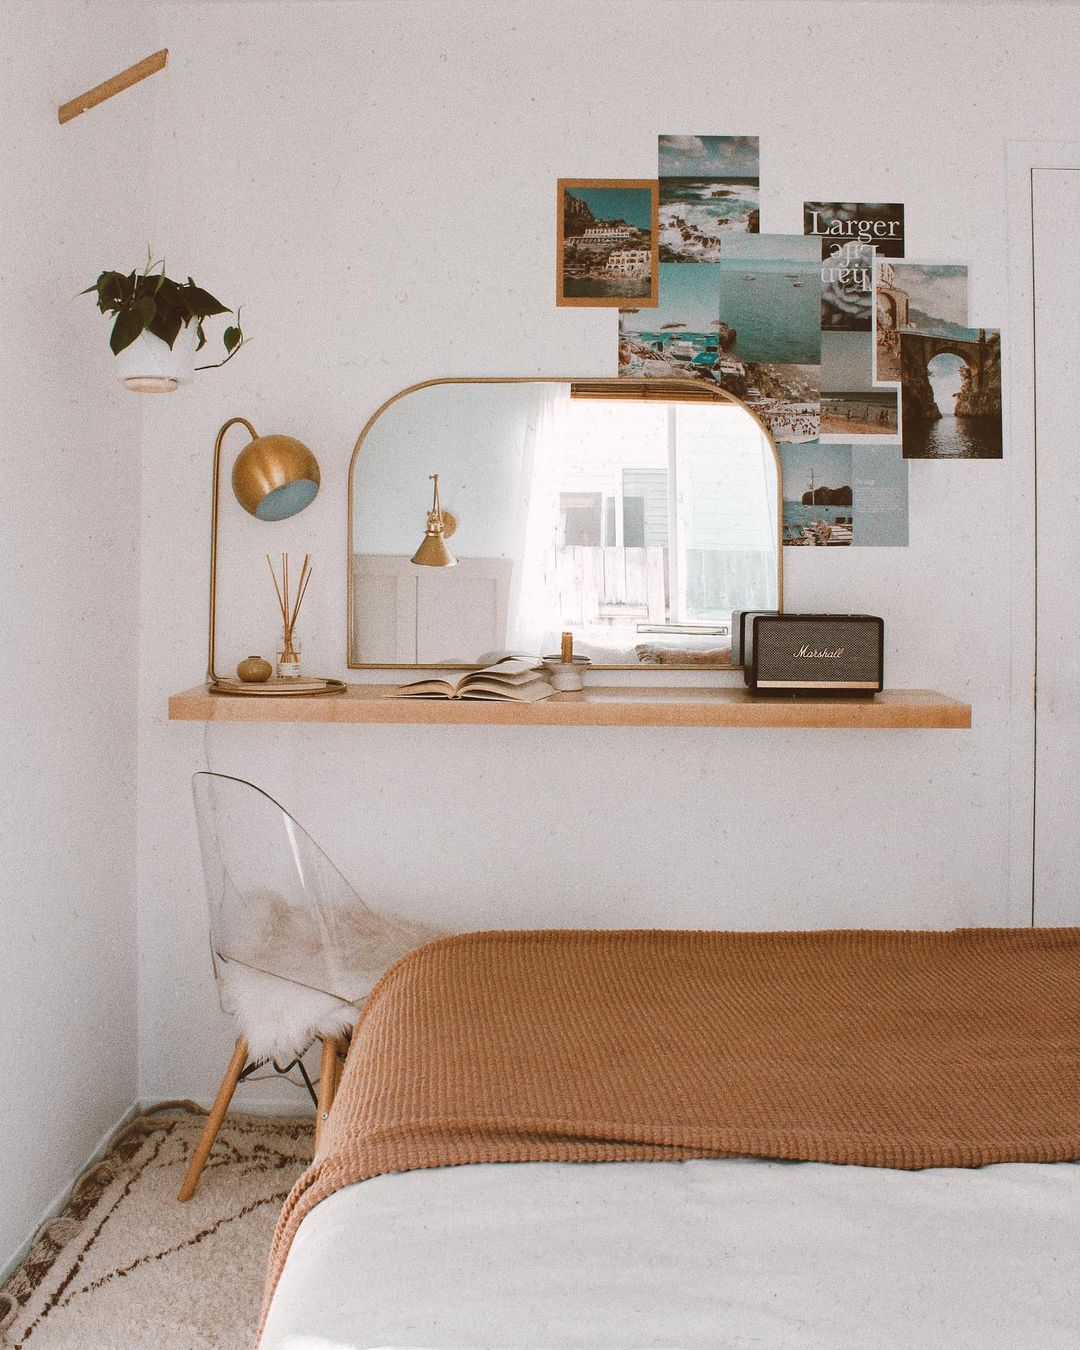 My Favorite Home Decor & Plant Influencers of 2020